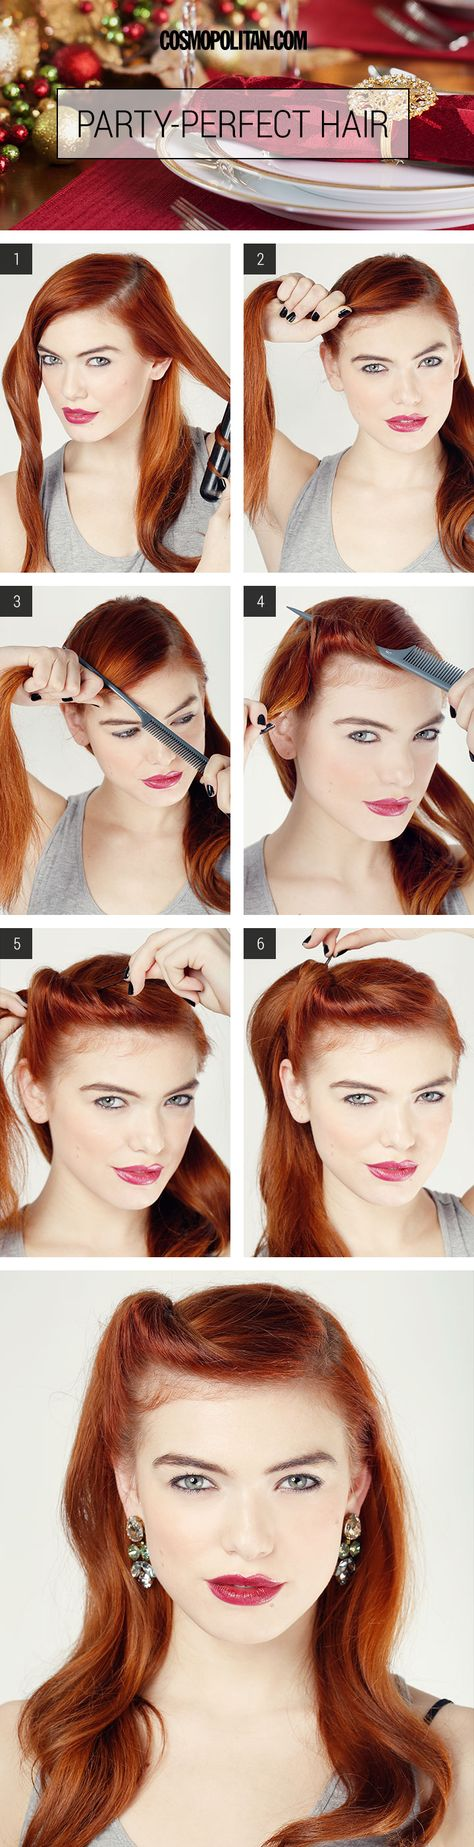 Party Hair How To - Party Hair Tutorial - Cosmopolitan